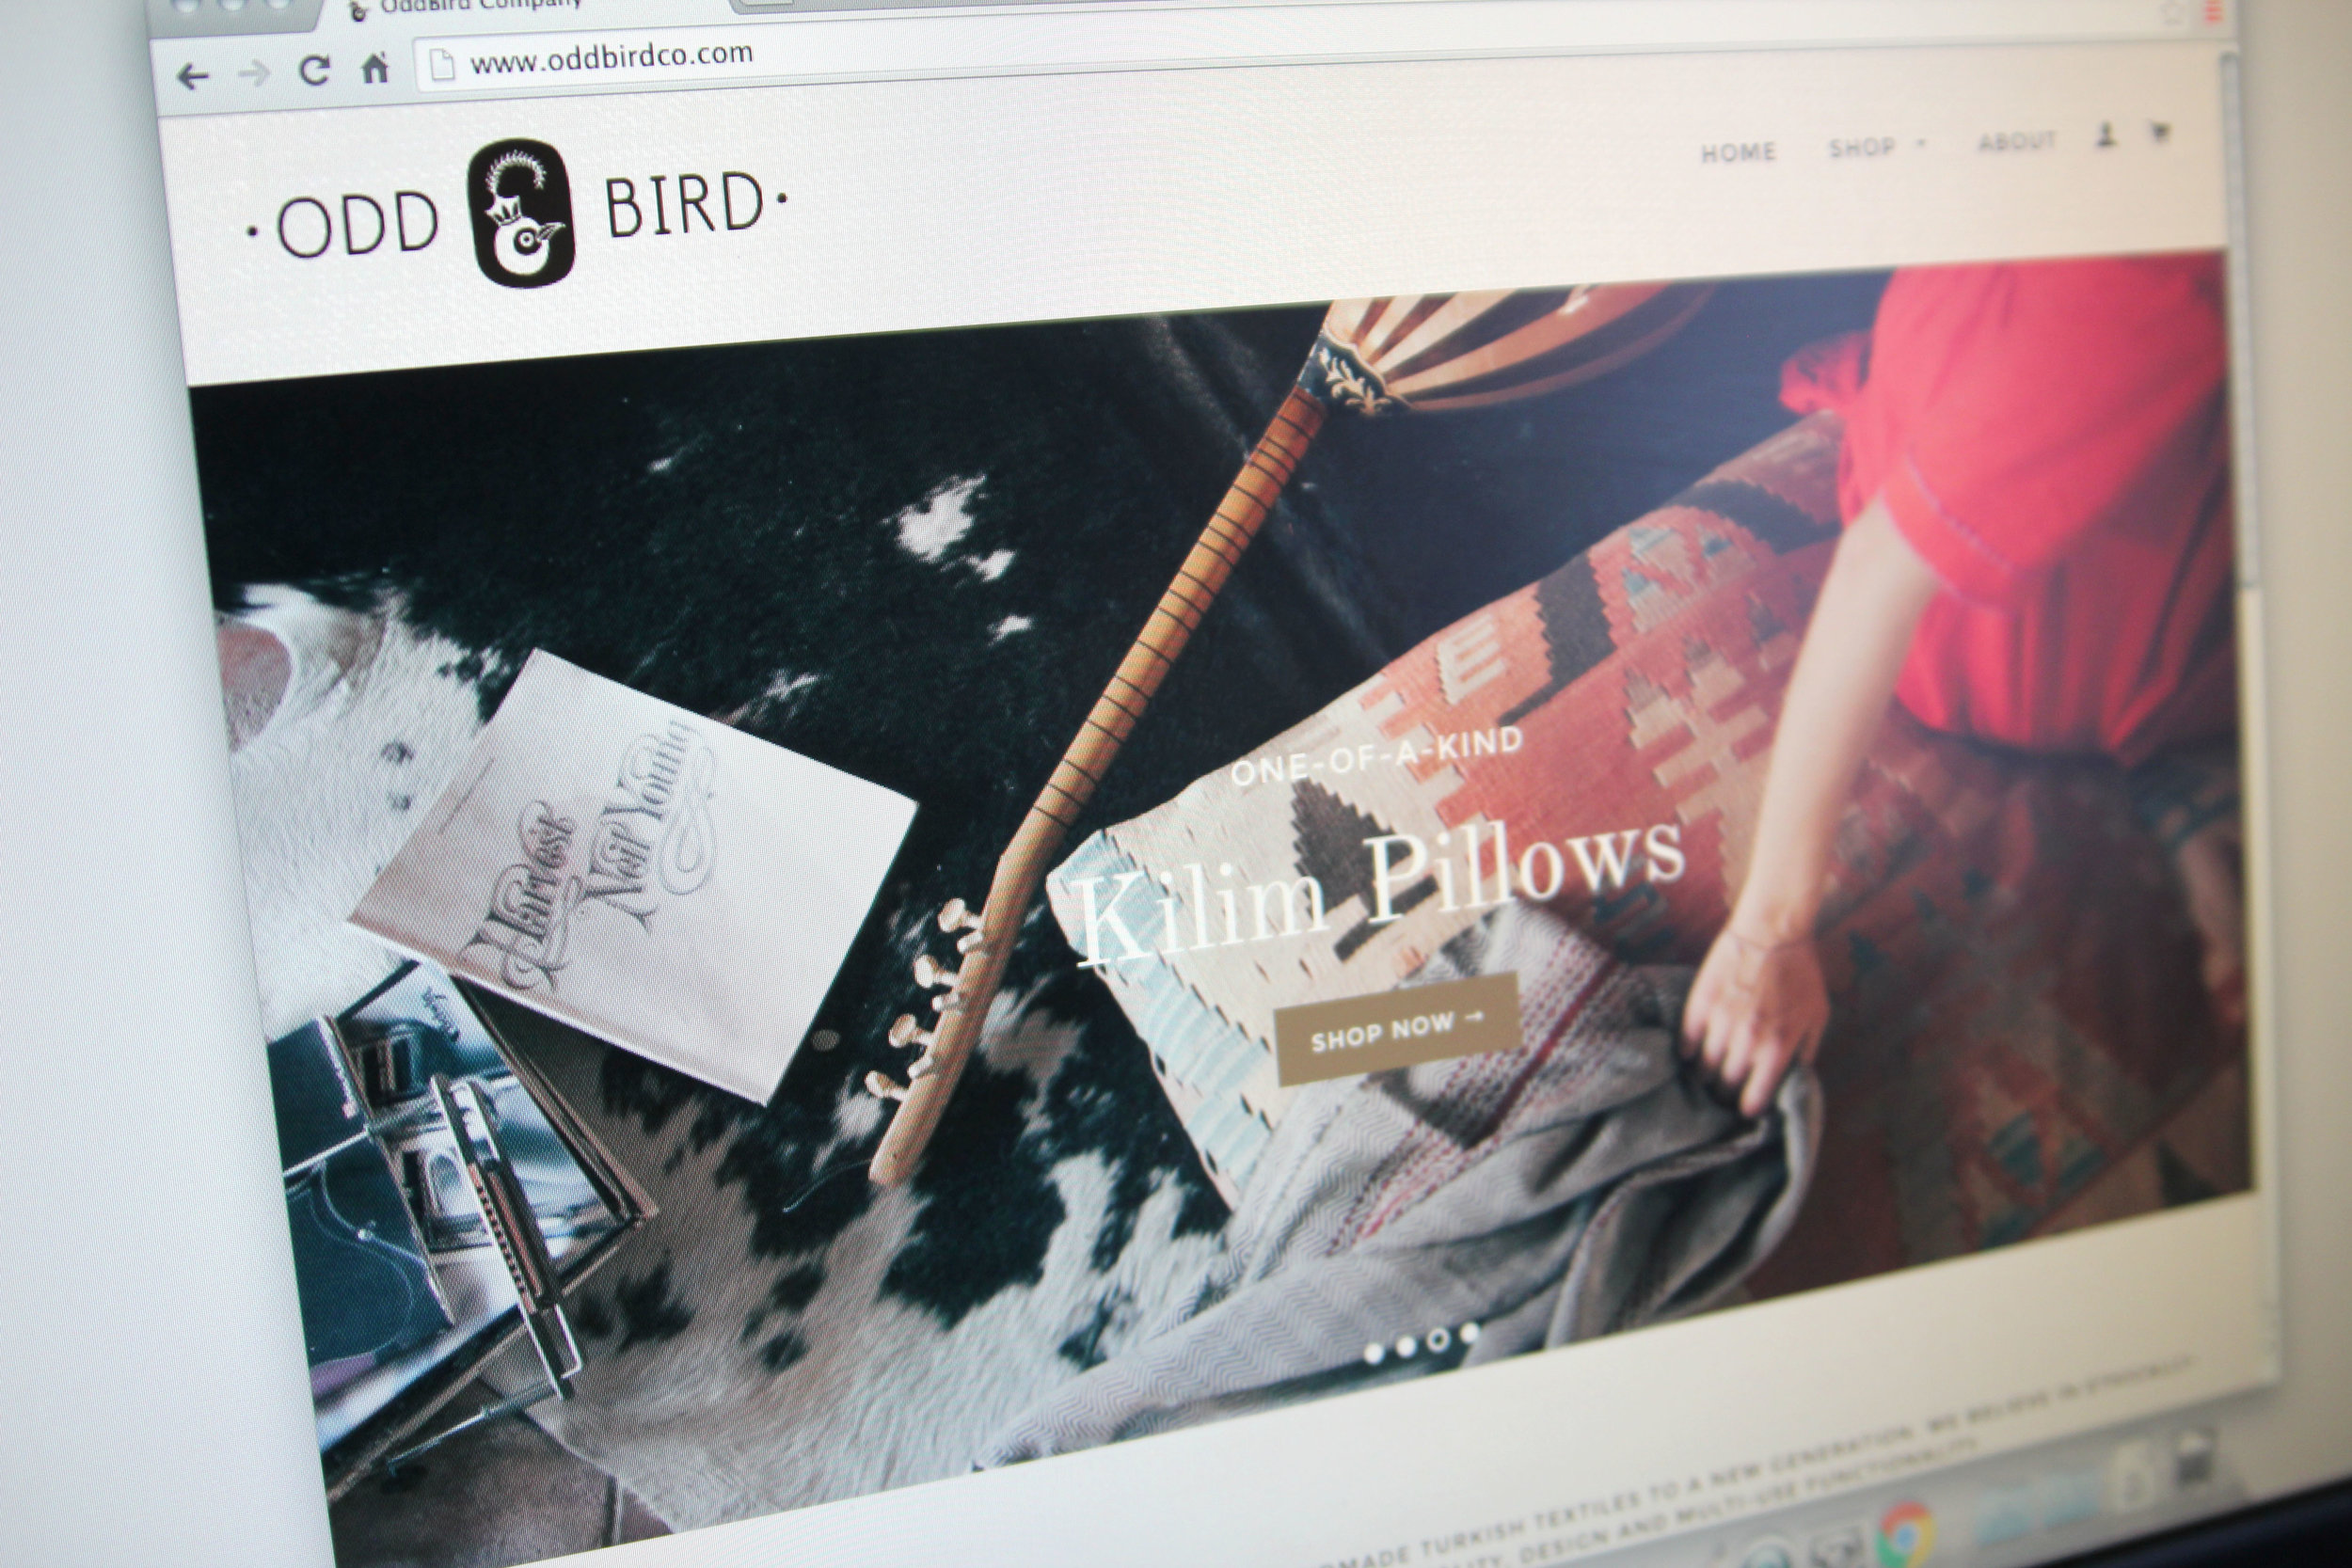 Oddbirdco.com - Website design and CSS customizations for e-commerce business